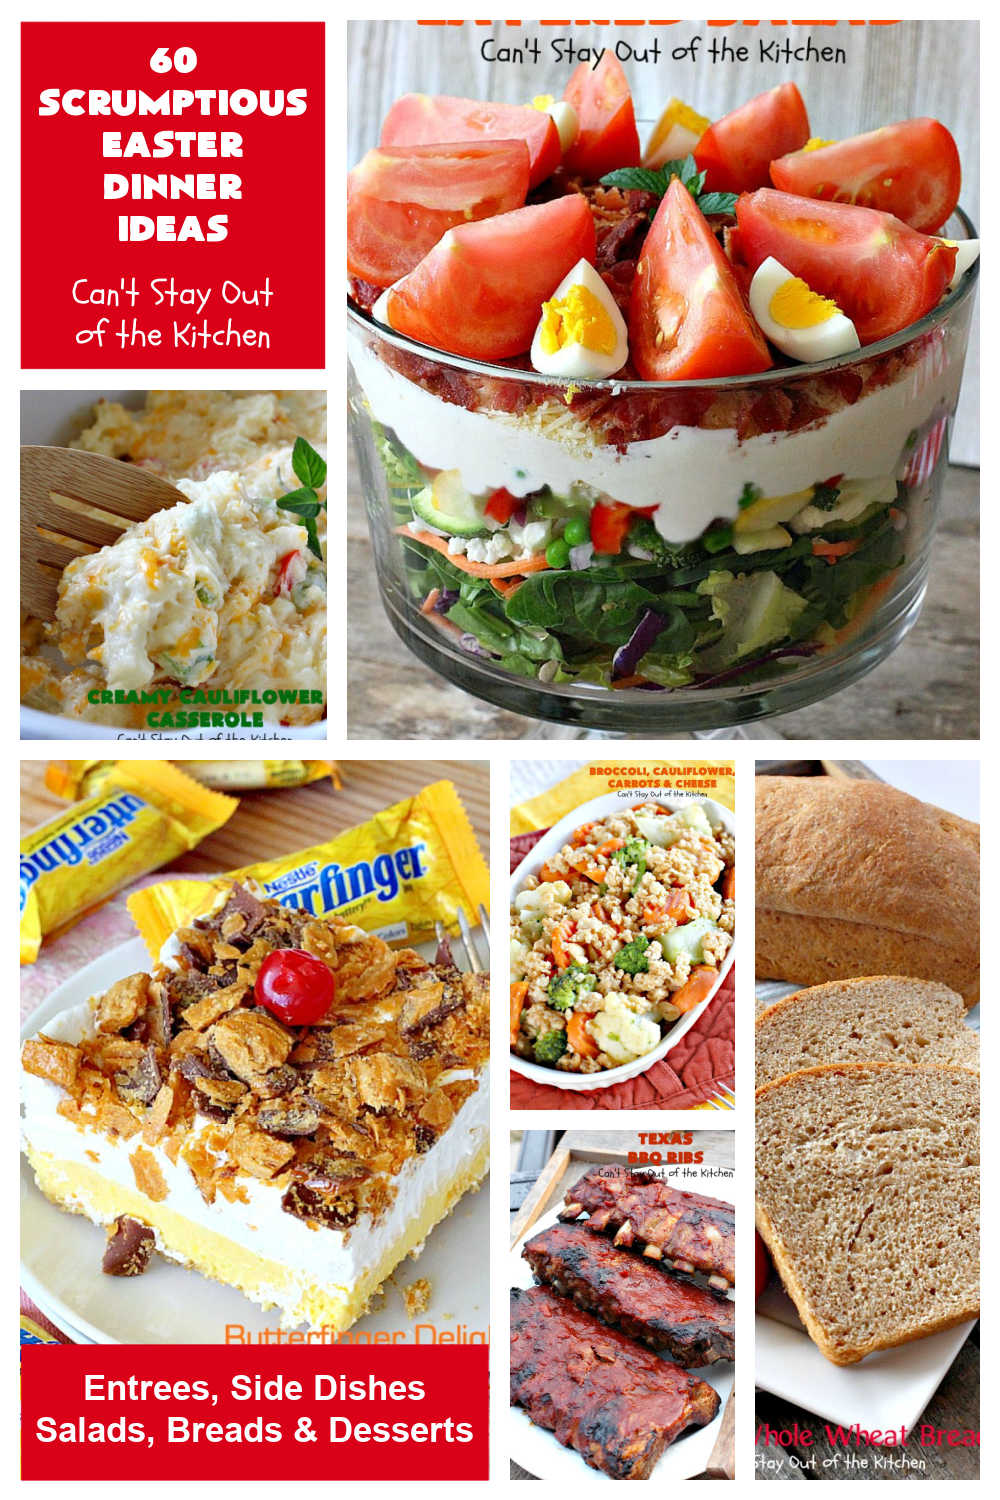 60 Scrumptious Easter Dinner Ideas | Can't Stay Out of the Kitchen | Beef up your #Easter dinner menu with some new #recipes! Choose from #entrees, #SideDishes, #Salads, #Breads or #Desserts. #EasterDinnerMenu #Easter #EasterDinner #60ScrumptiousEasterDinnerIdeas